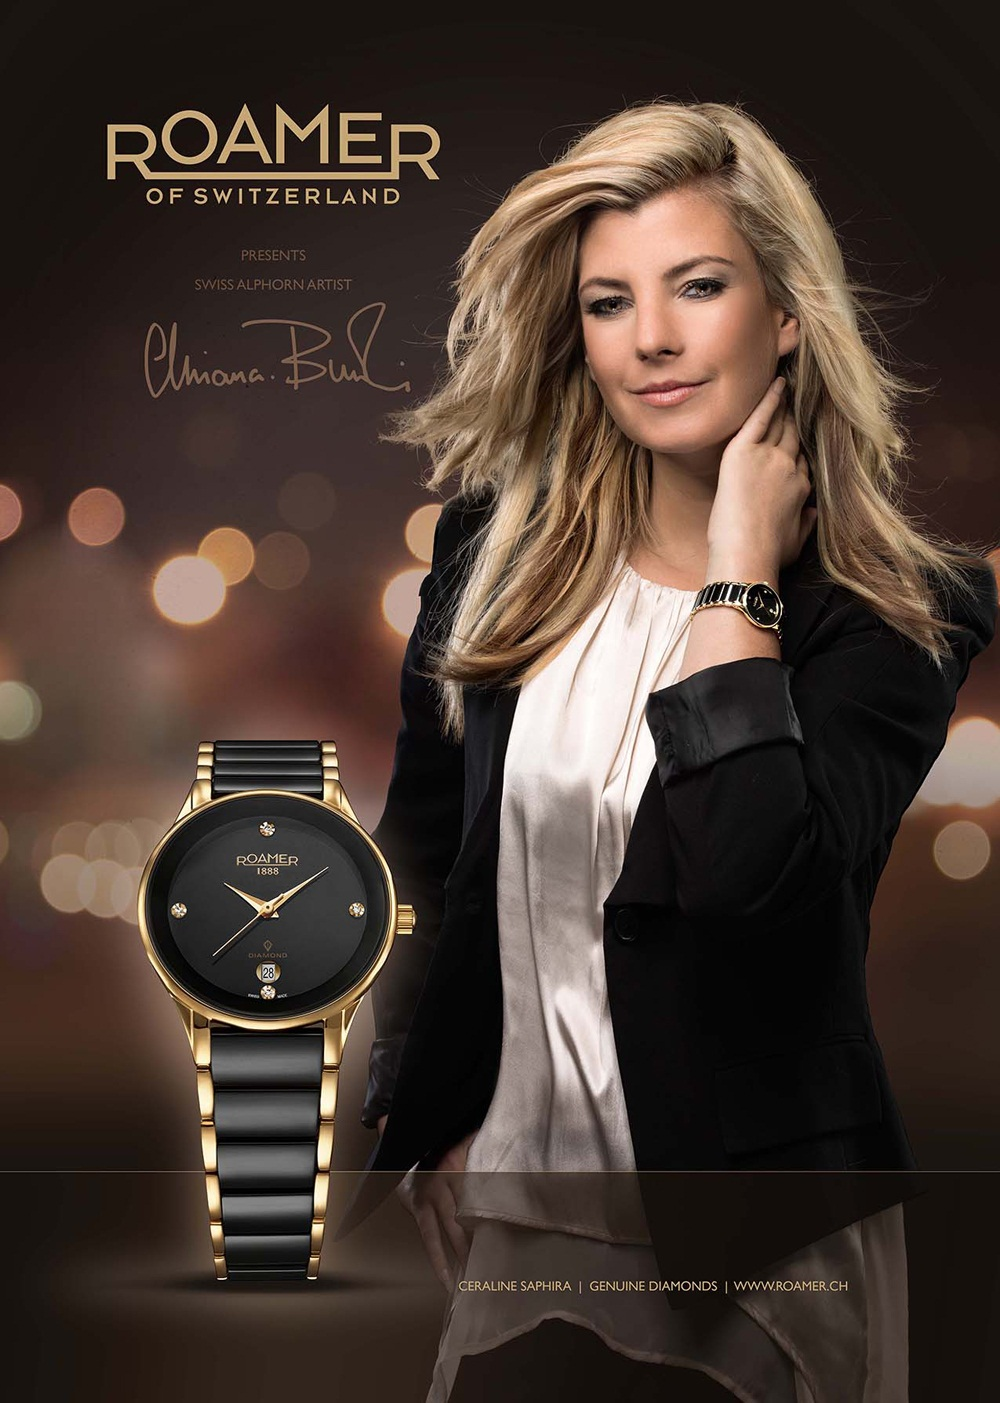 Roamer of Switzerland presents Brand Ambassador ELIANA BURKI